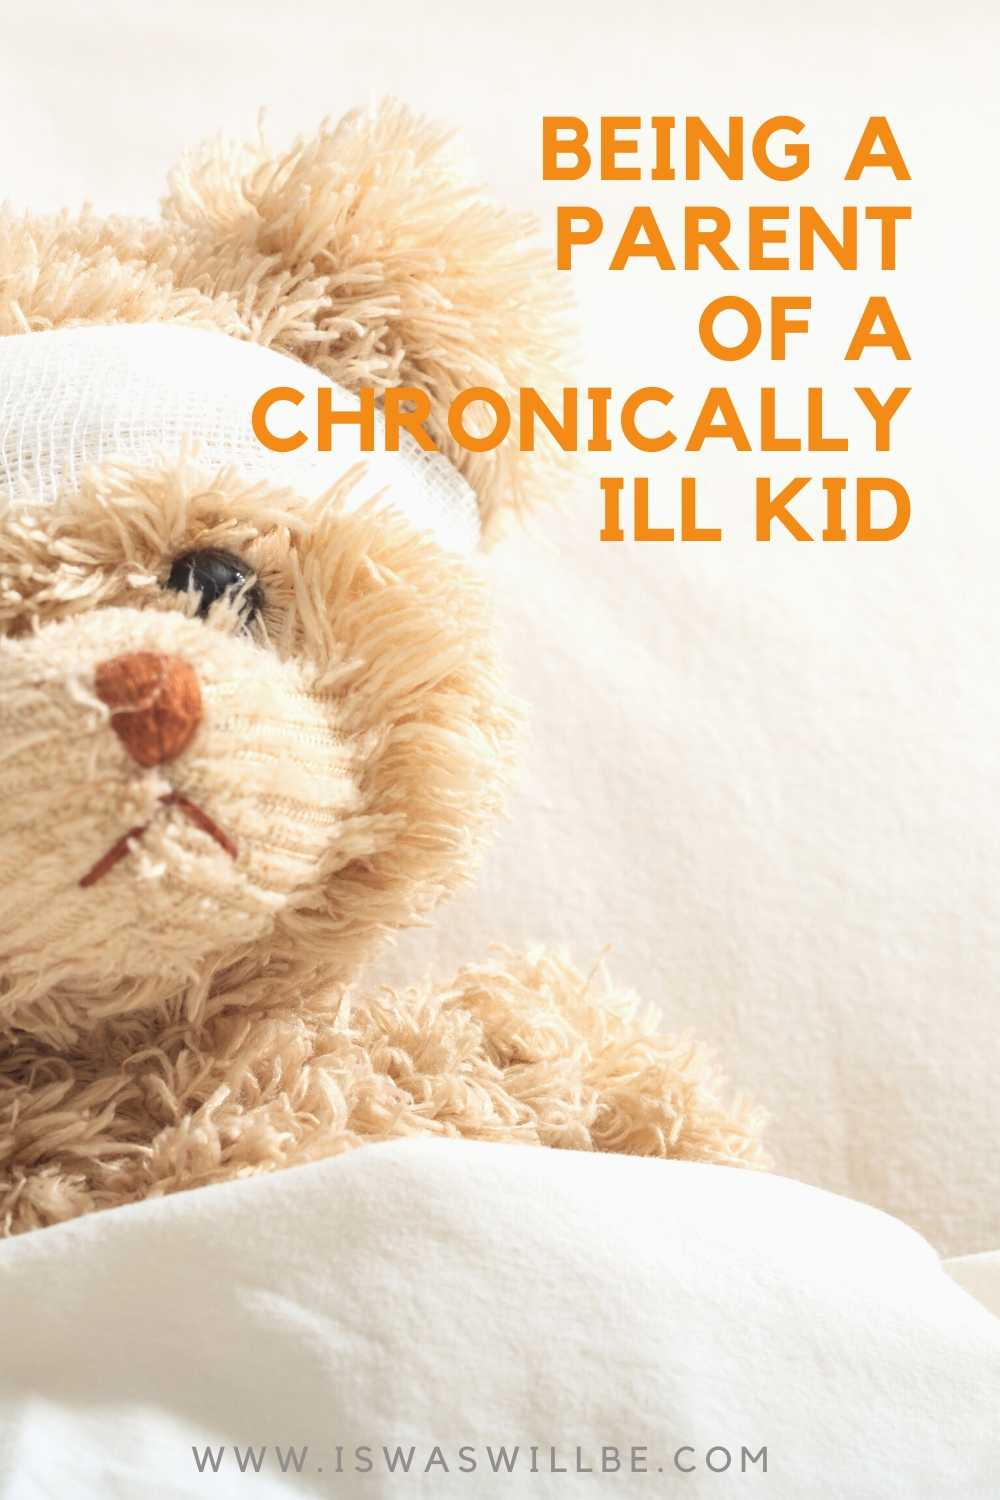 Image of sick teddy bear